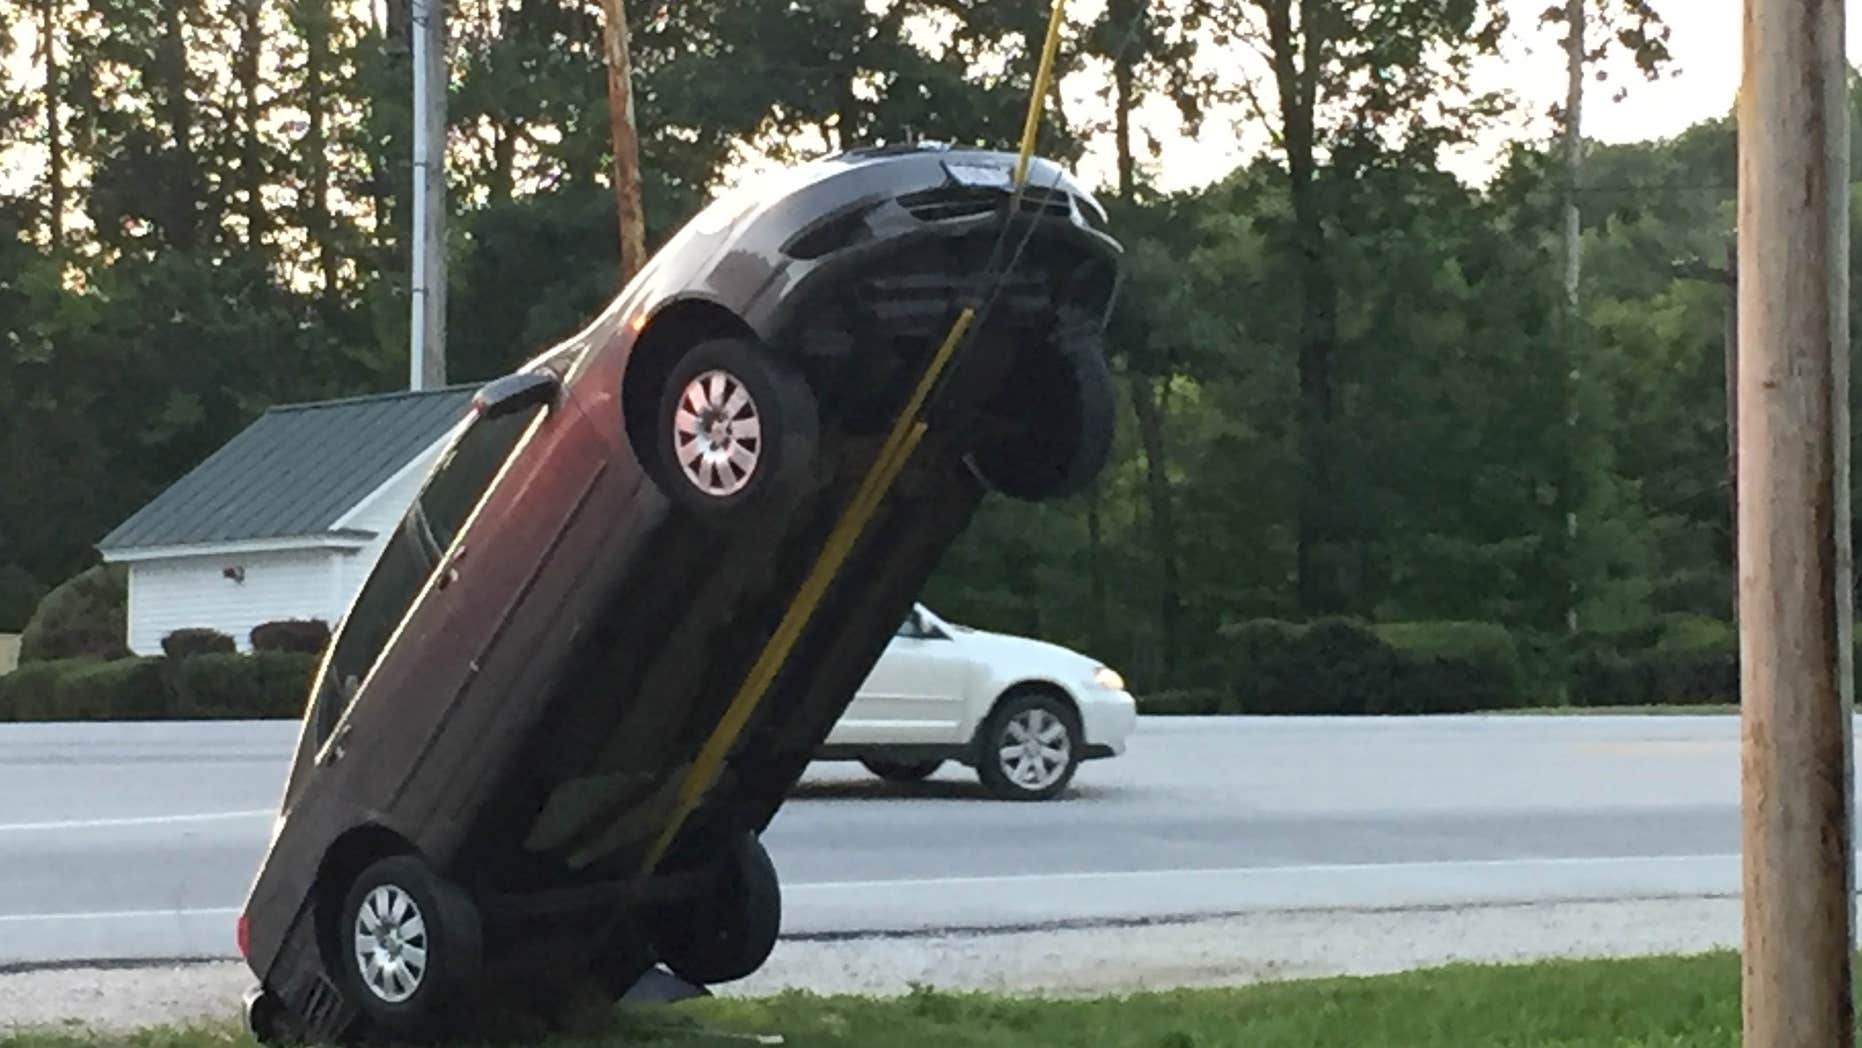 This Wednesday, July 27, 2016, photo provided by G. Ray Ault shows a vehicle on wires attached to a utility pole in Mendon, Vt.